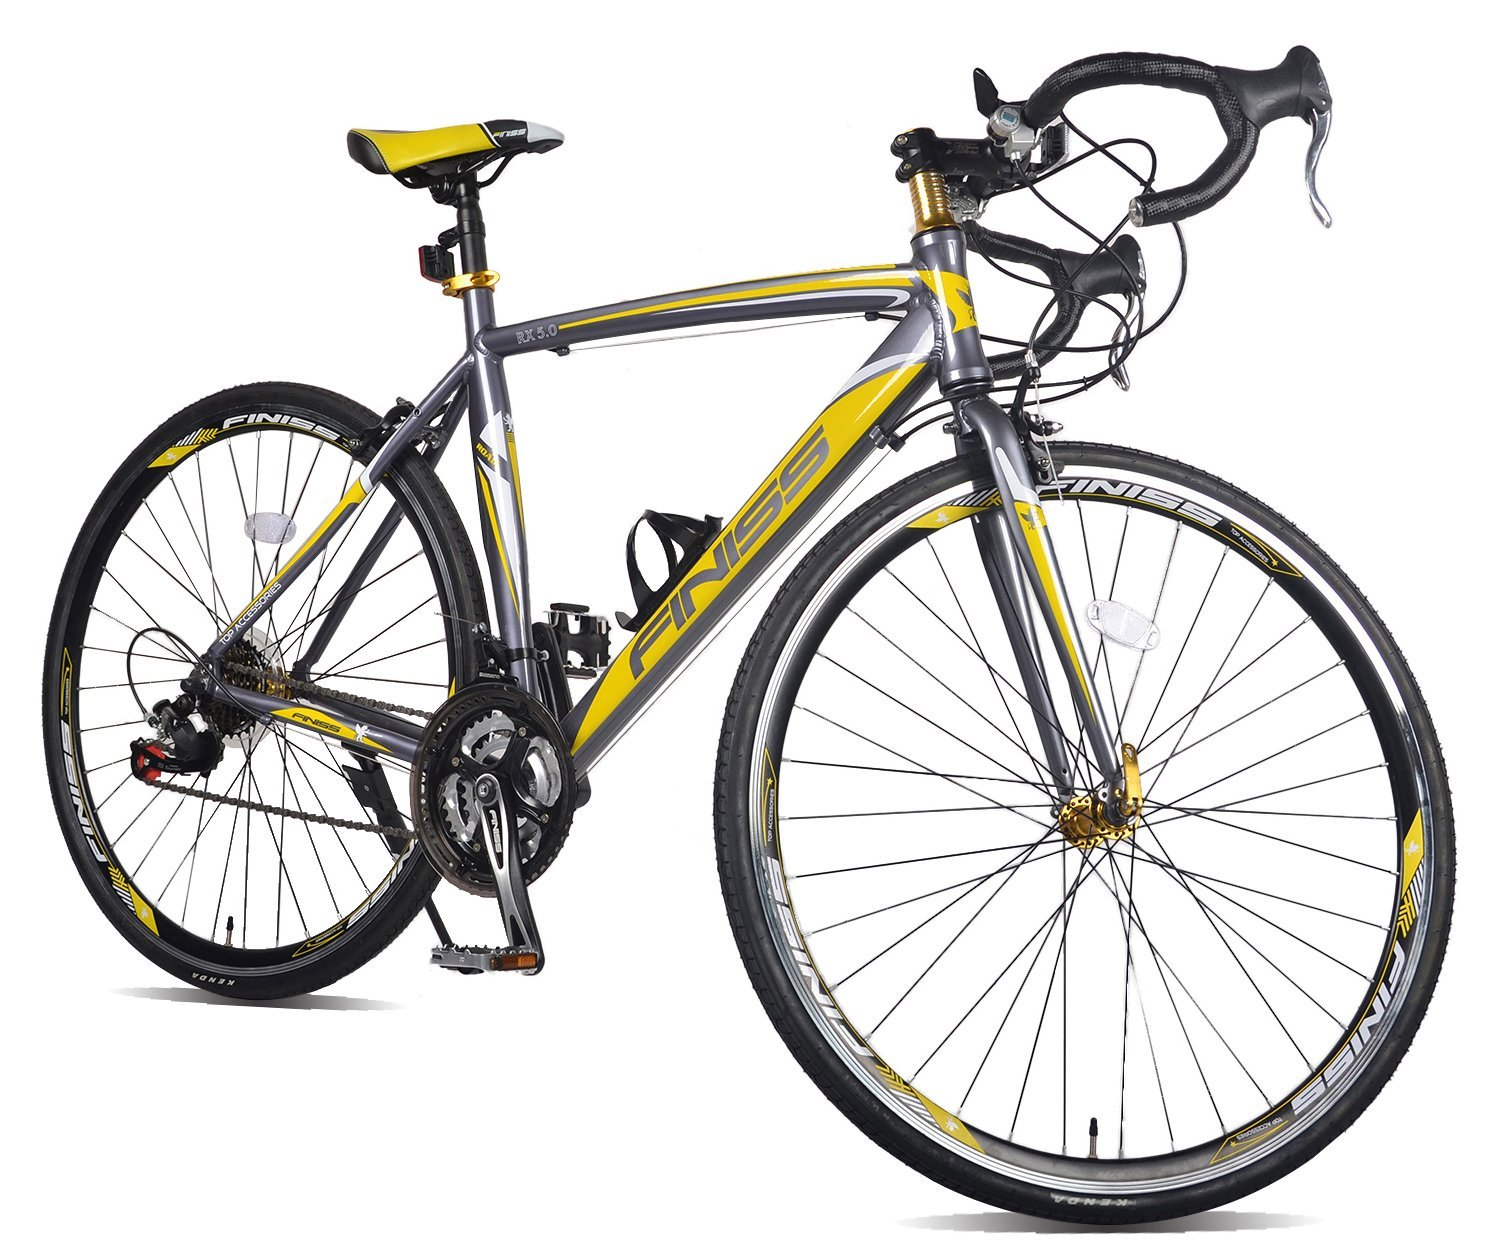 Merax Finiss Aluminum 21 Speed 700C Road Bike Racing